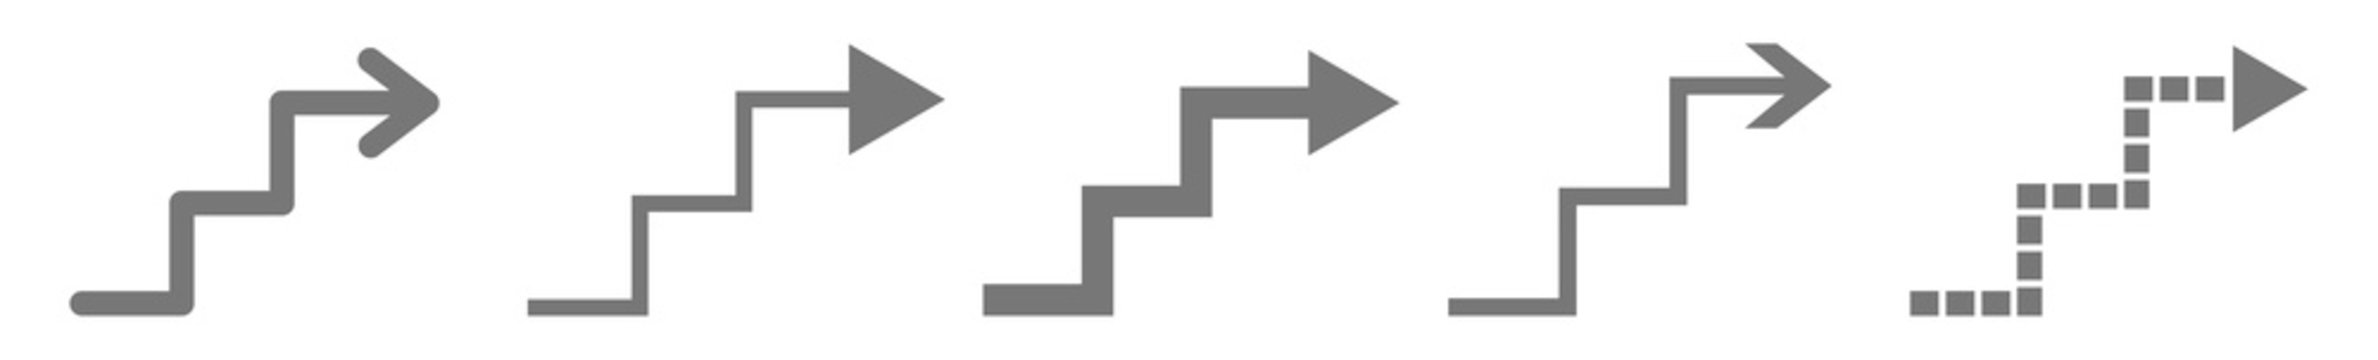 Upstairs Arrow Icon | Staircase Illustration | Stairway Symbol | Stairwell Logo | Steps Stairs Up Sign | Isolated | Variations